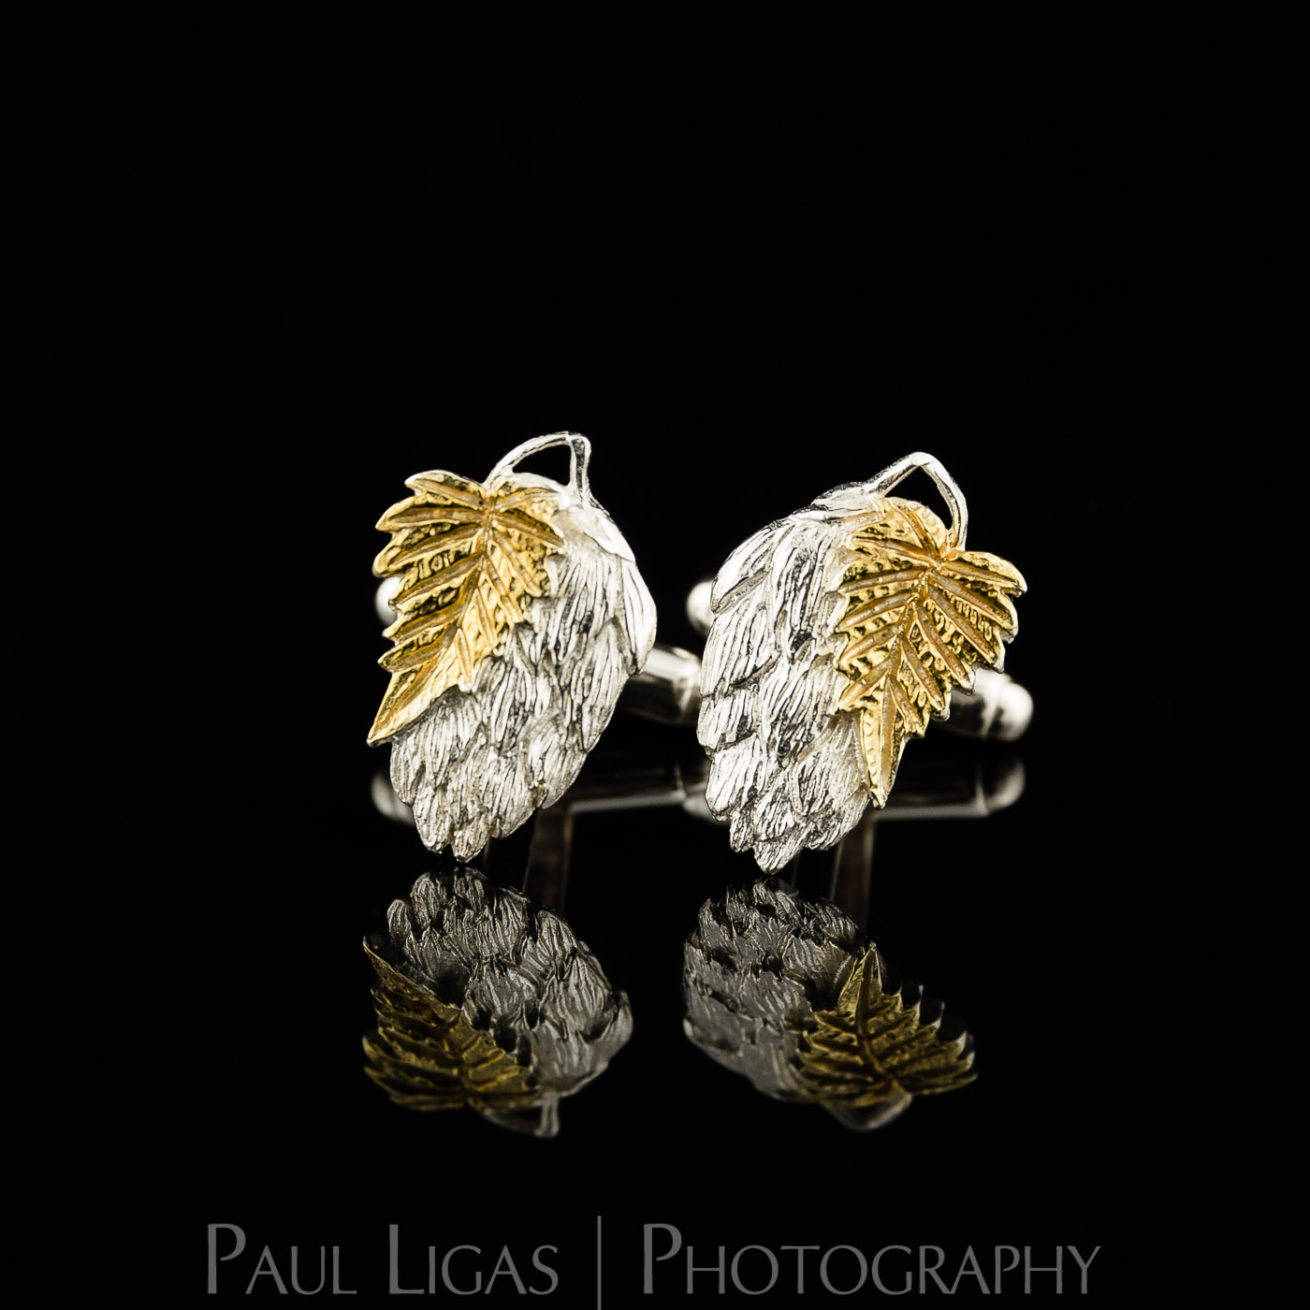 JB Gaynan & Son, Ledbury, Herefordshire jewellery product photographer photography 1688